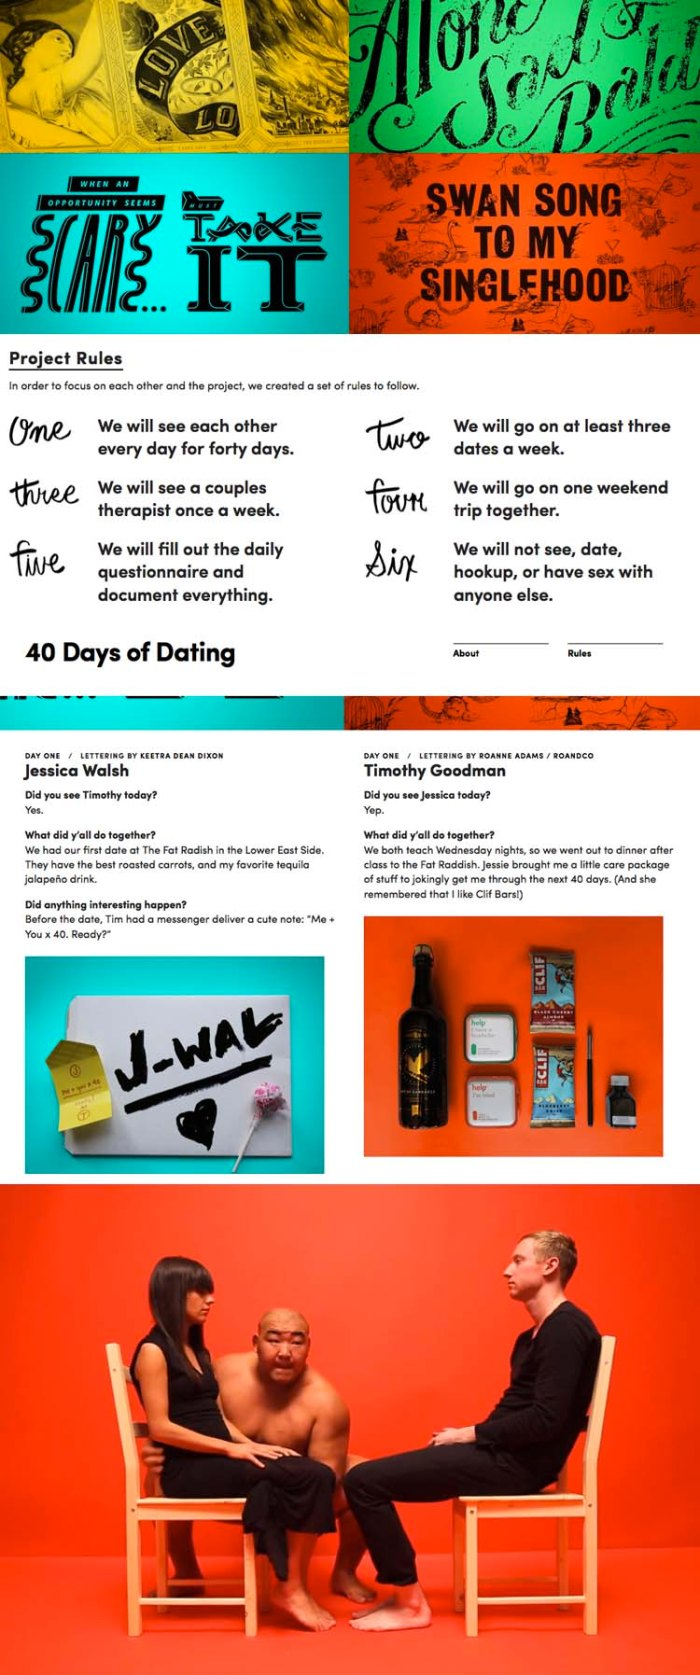 How the 40 Days of Dating Experiment Affected Millions of People